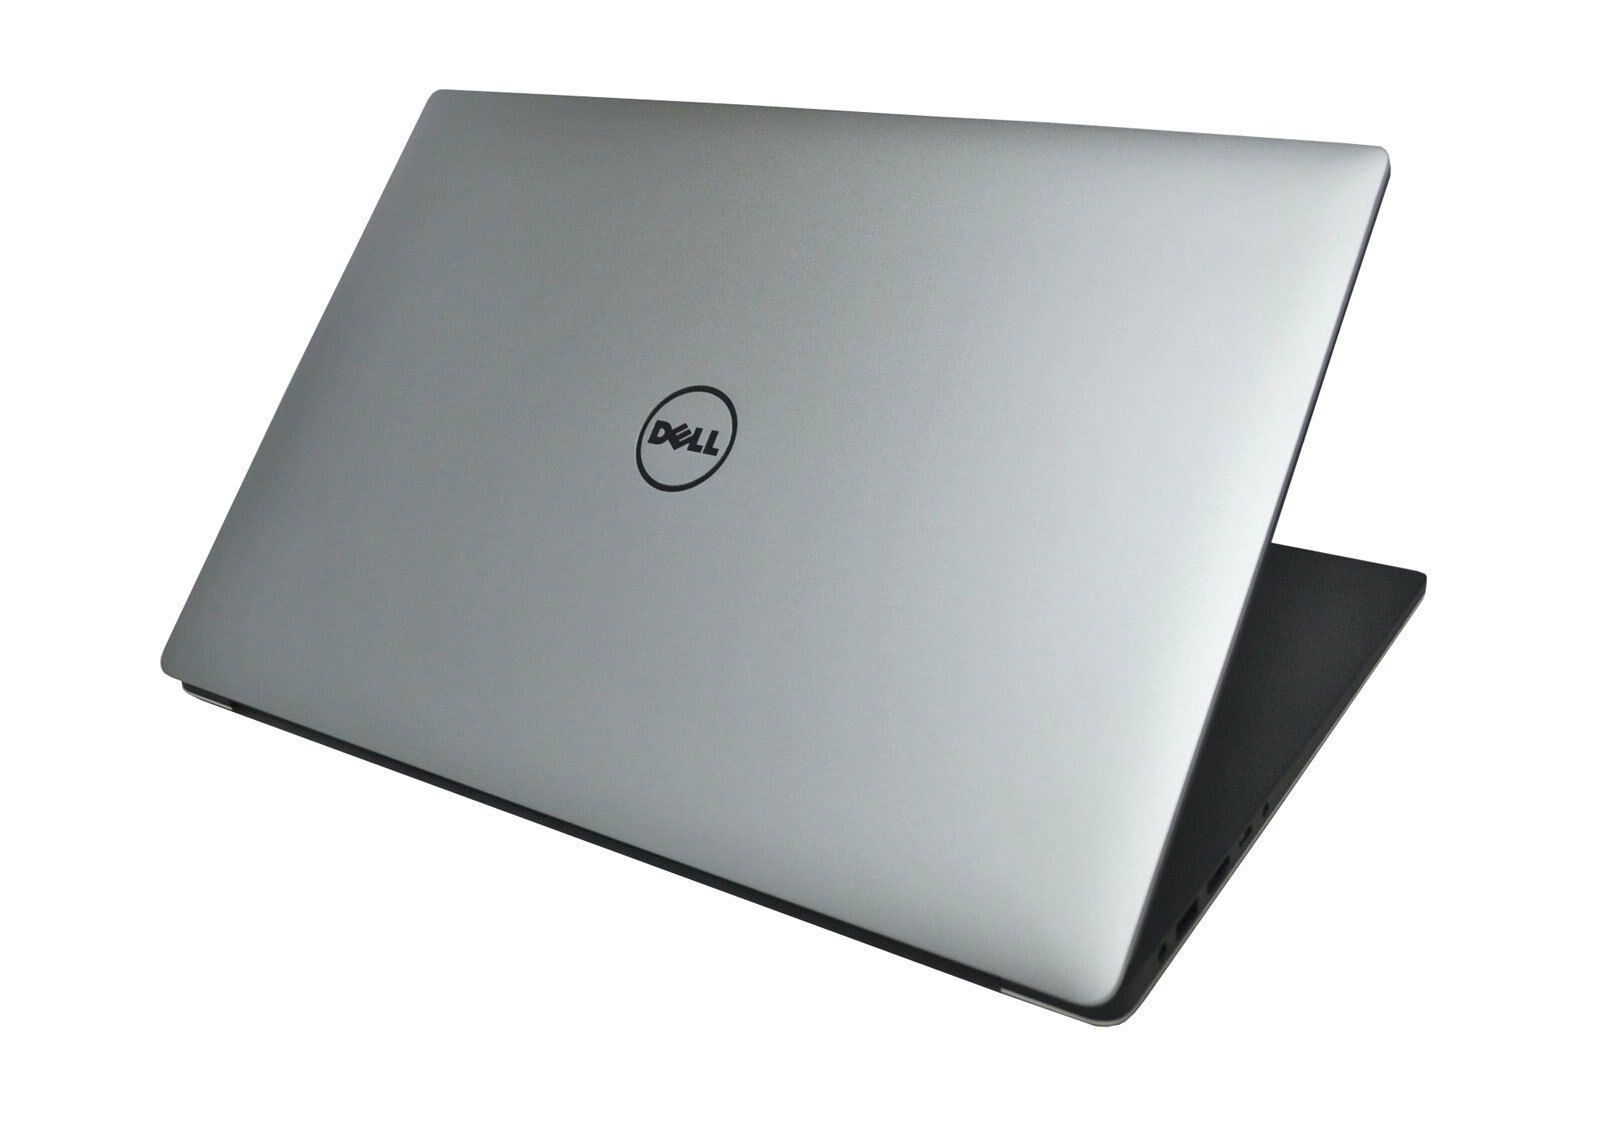 Dell Precision 5520 CAD Laptop: Core i7-7820HQ, 32GB RAM, Quadro, 1.9KG - CruiseTech